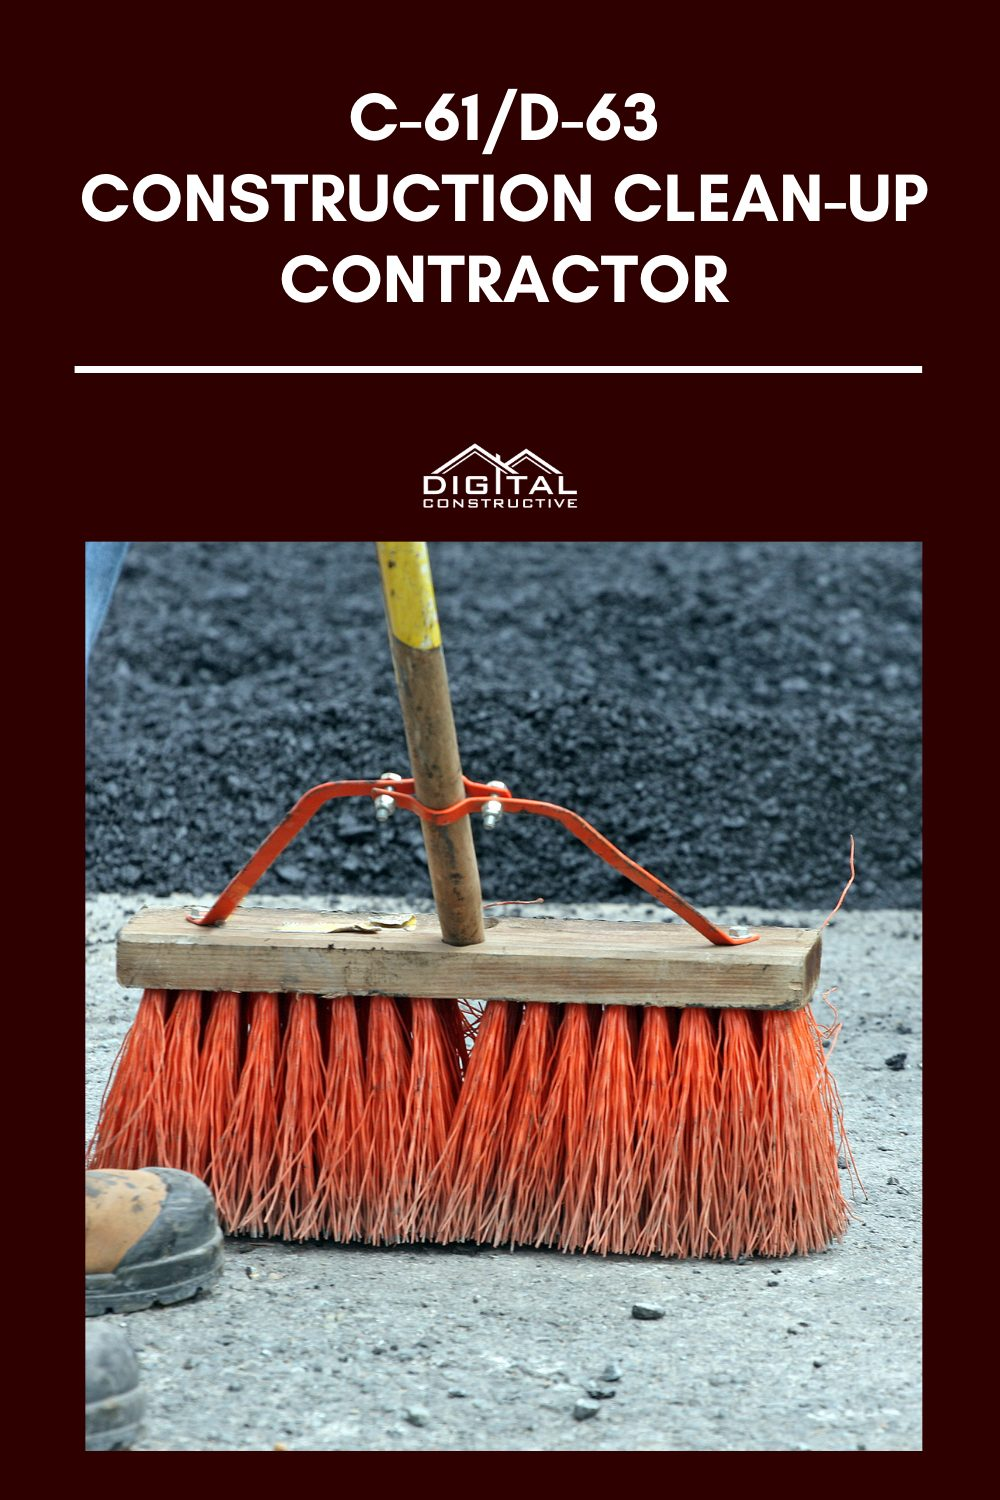 what can you do with a C-61/D-63 construction clean up contractor license in California